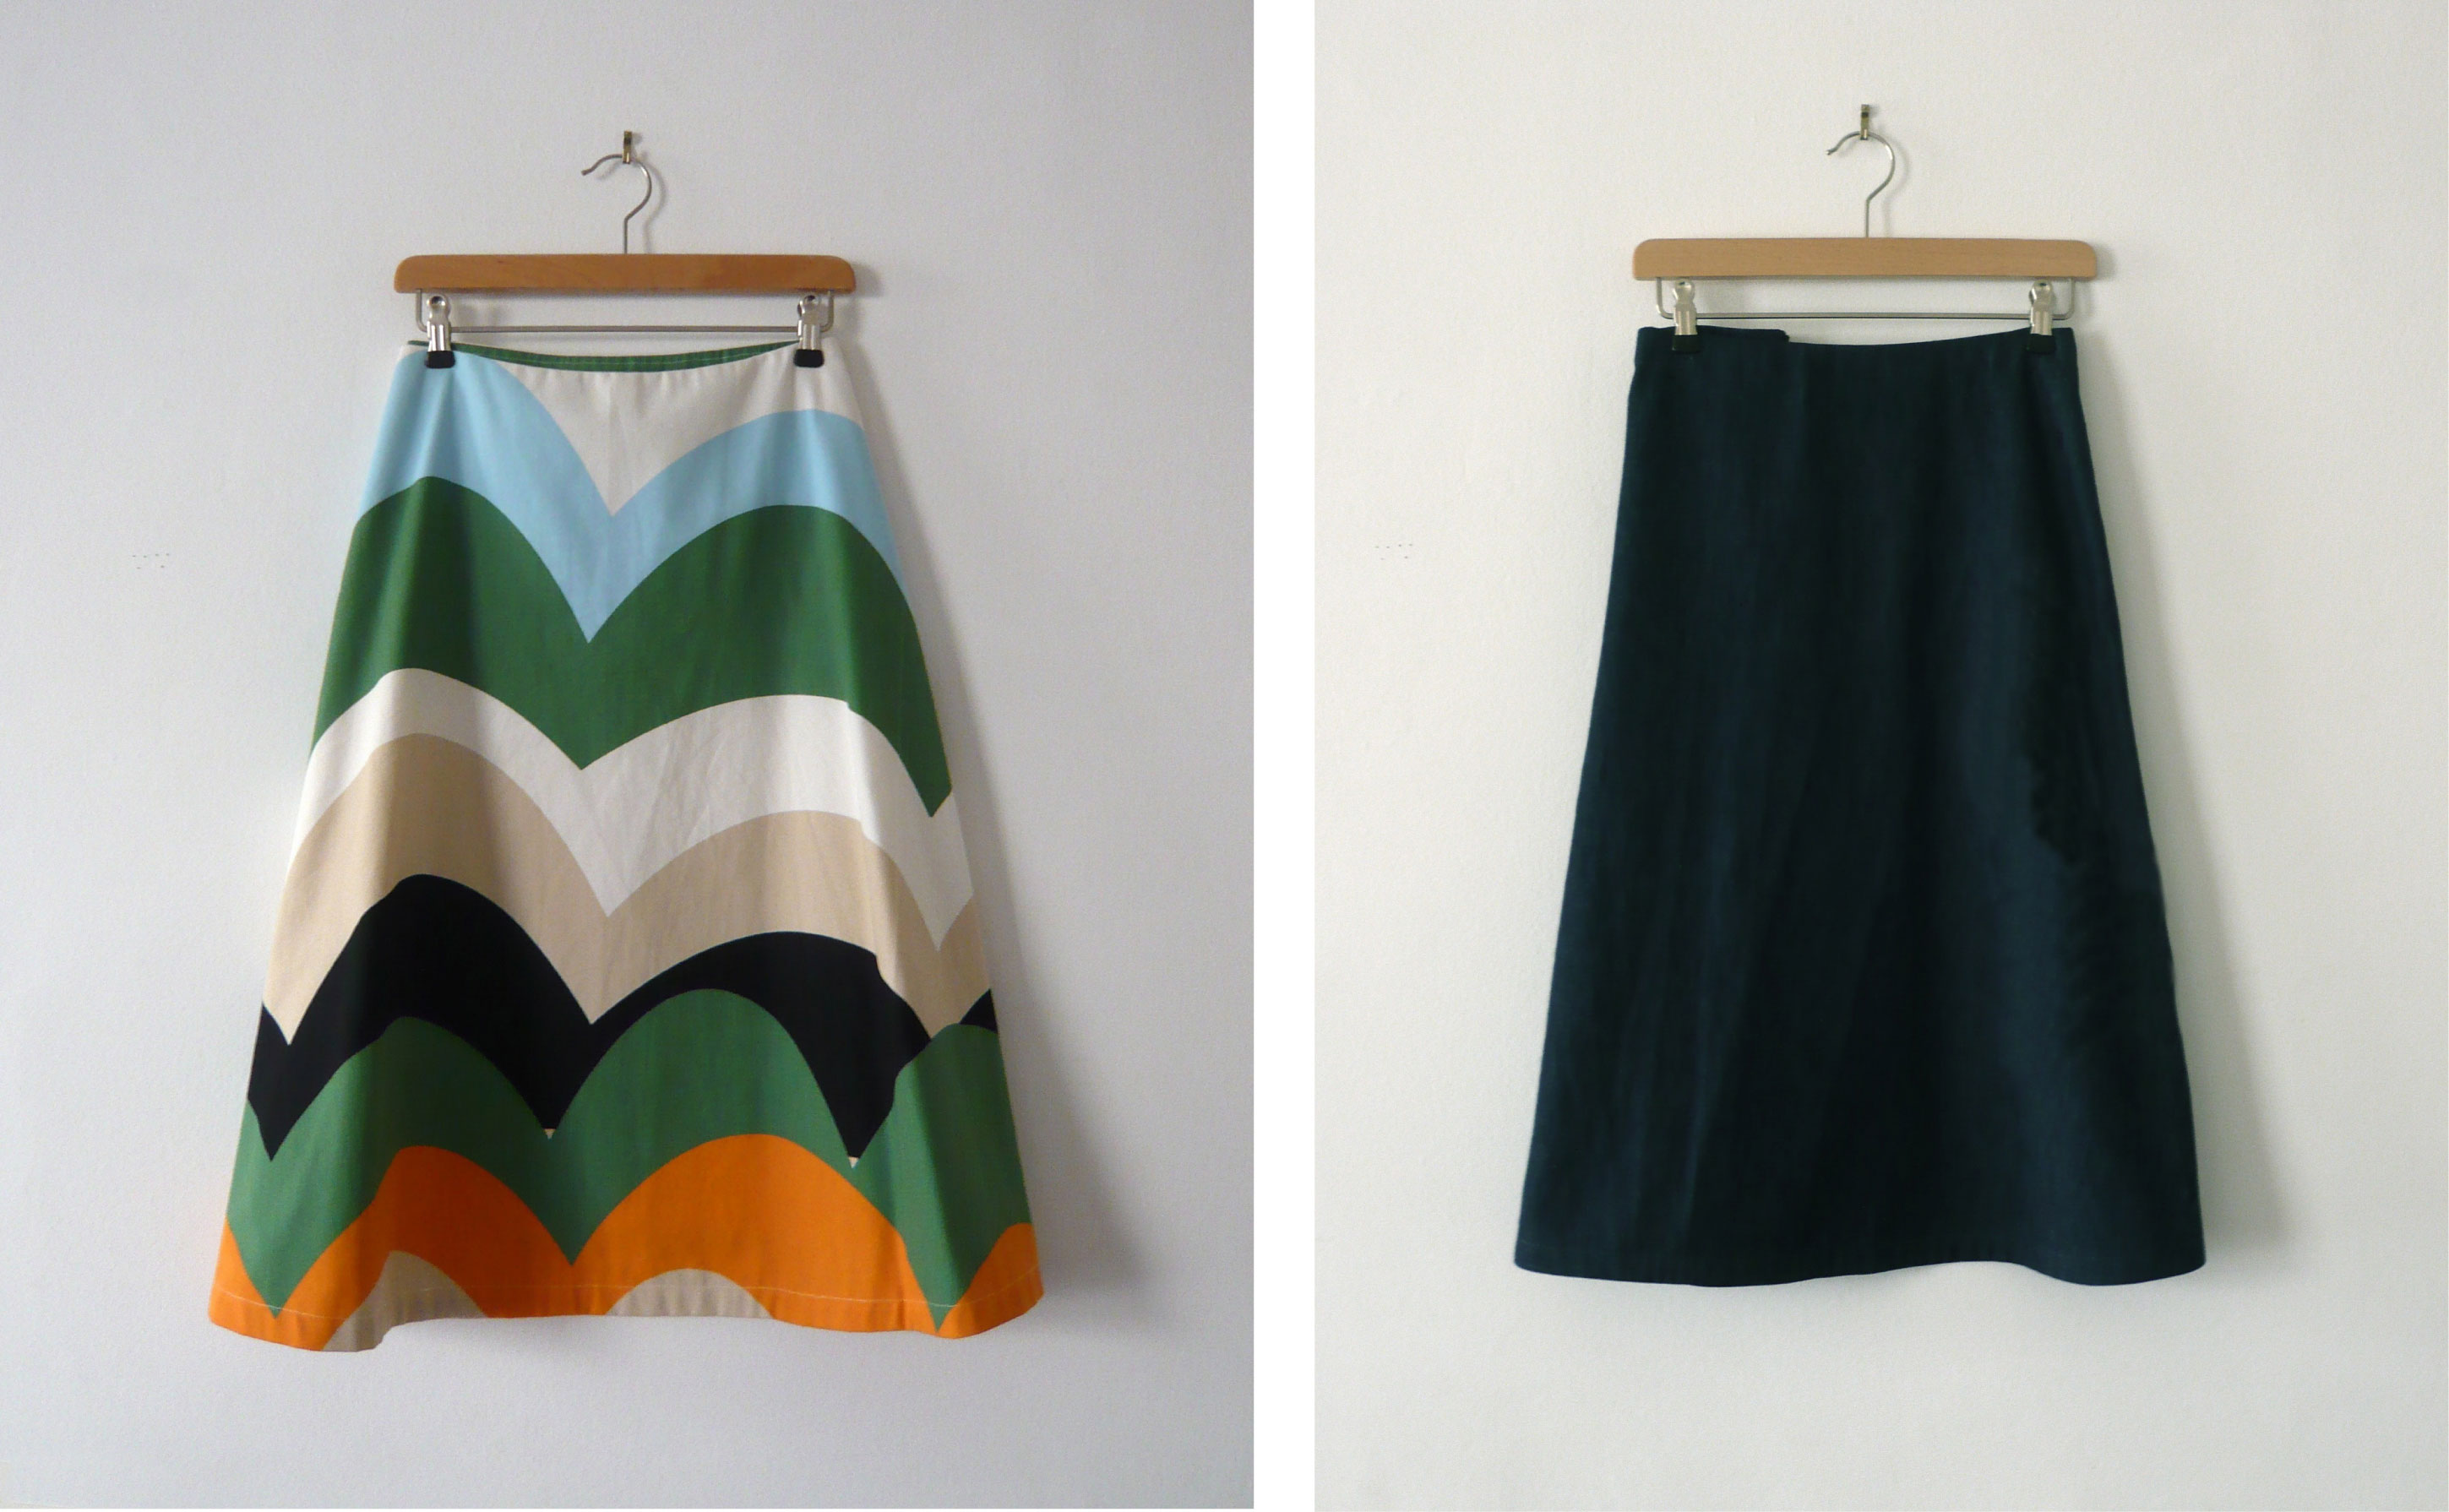 Beginners Skirt-making Workshop | Wendy Ward